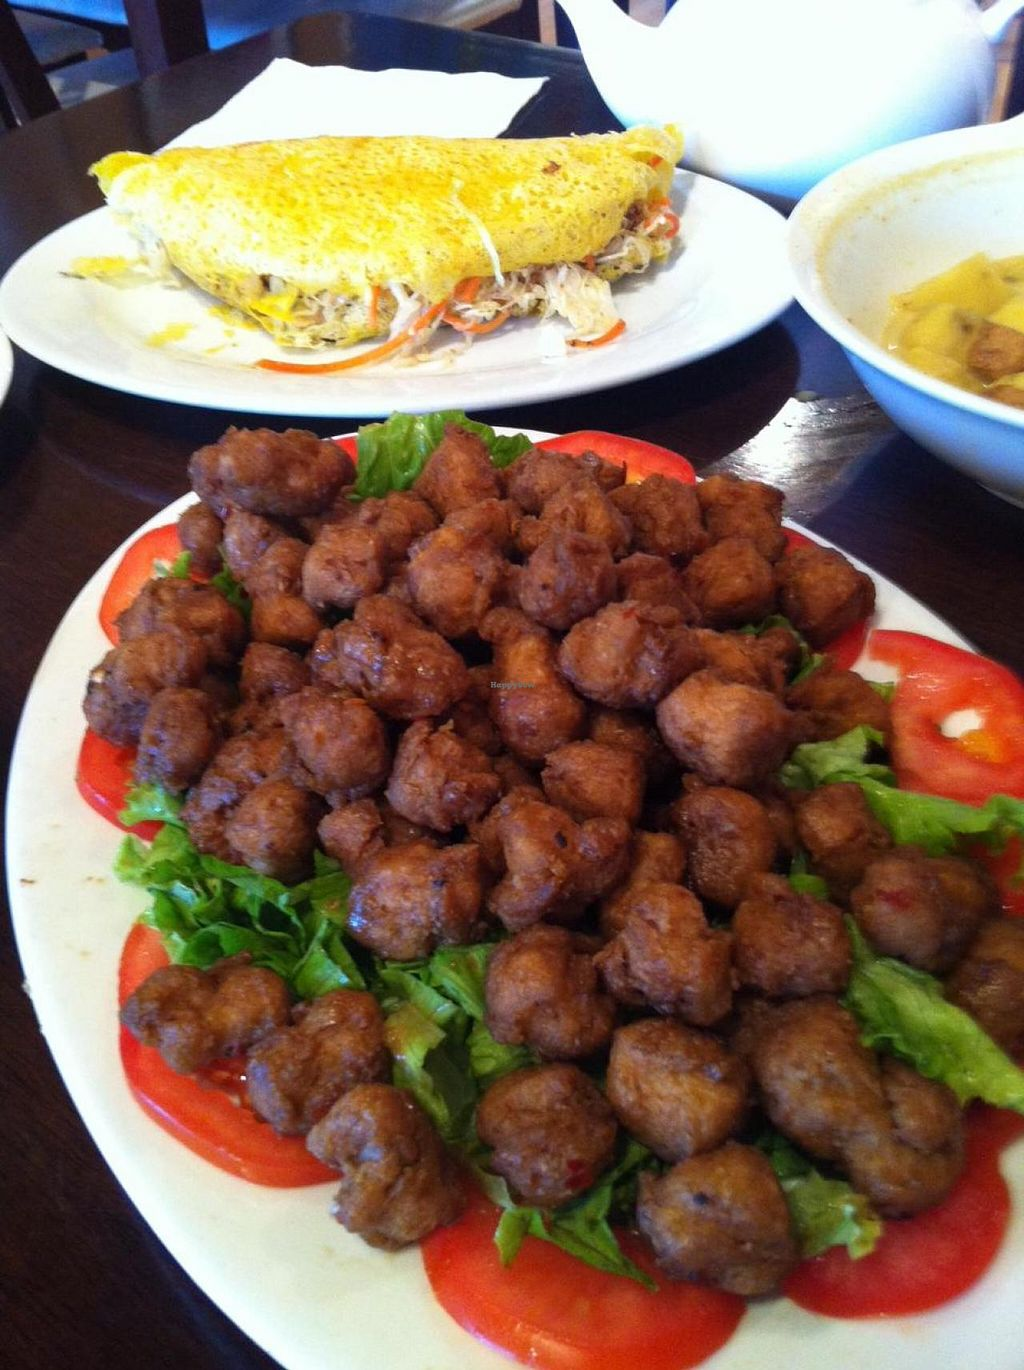 """Photo of Paradise Vegetarian Noodle House  by <a href=""""/members/profile/vegan%20frog"""">vegan frog</a> <br/>Garlic 'beef' bowls <br/> September 7, 2014  - <a href='/contact/abuse/image/3733/79333'>Report</a>"""